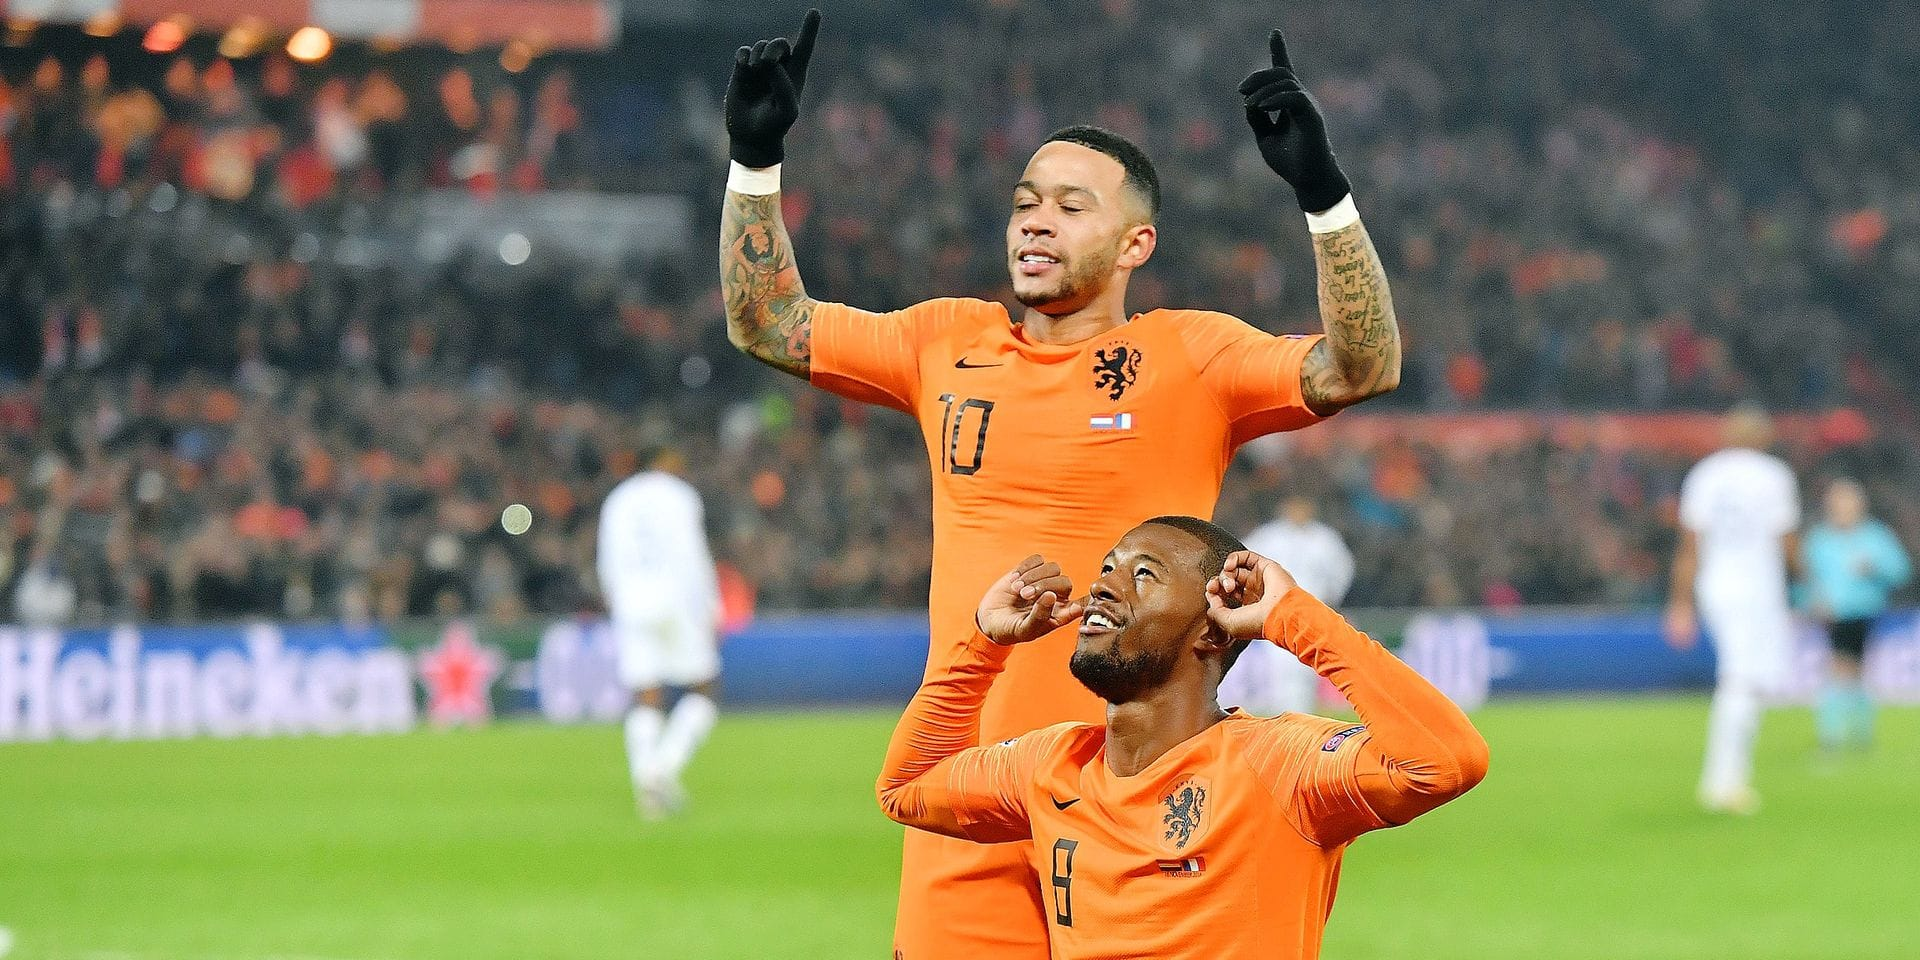 Netherlands' midfielder Georginio Wijnaldum (bottom) celebrates with Netherlands' forward Memphis Depay after scoring a goal during the UEFA Nations League football match between the Netherlands and France at the Feijenoord stadium in Rotterdam on November 16, 2018. (Photo by EMMANUEL DUNAND / AFP)